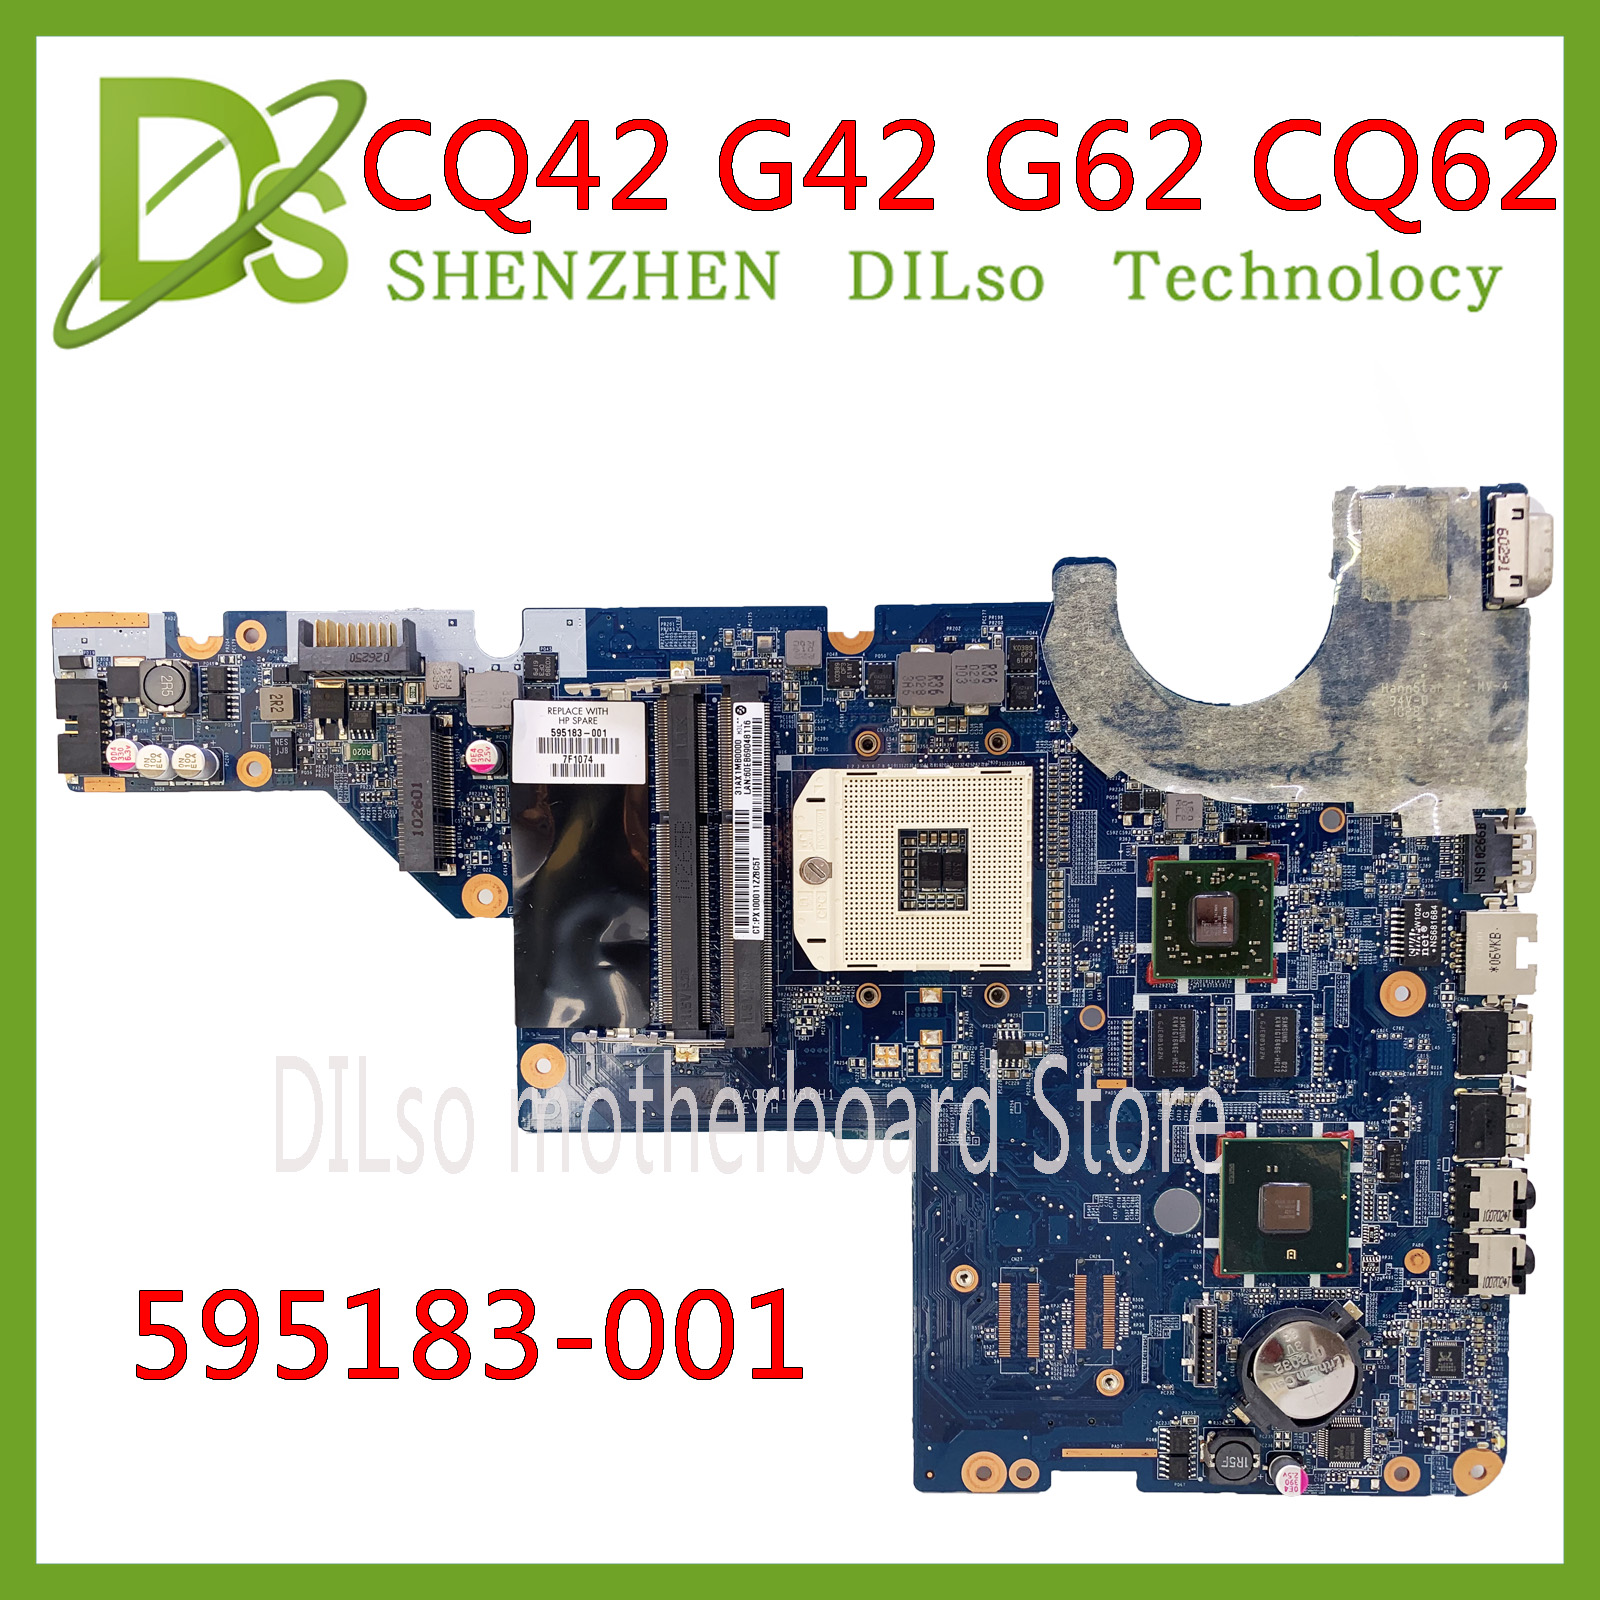 KEFU 595183-001 For HP Motherboard HP Motherboard CQ42 G42 G62 CQ62 Laptop Motherboard DAOAX1MB6F0 DA0AX1MB6H0 100% Original